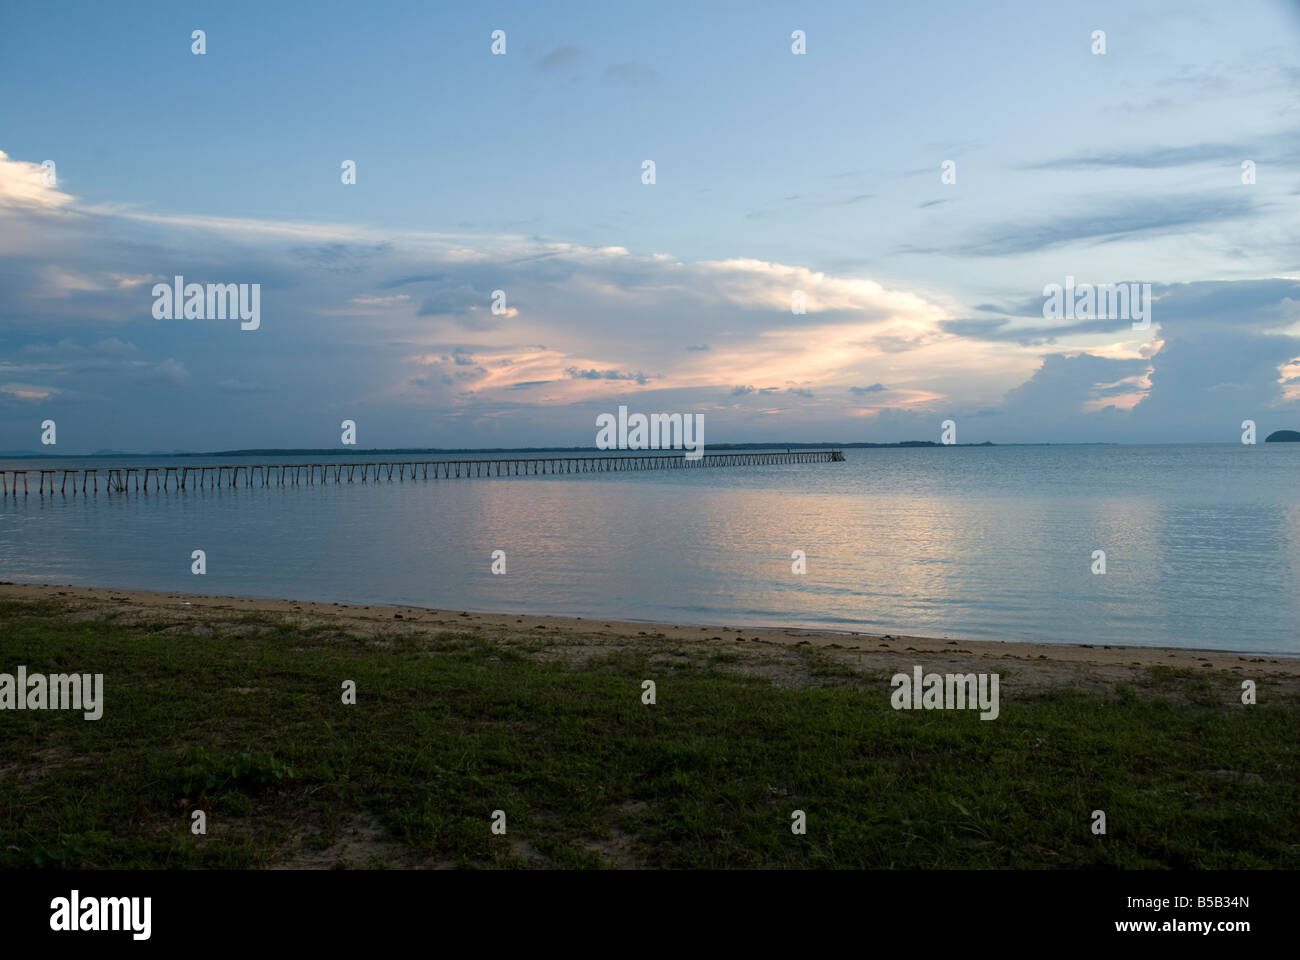 Cloud and Sea scape from the South China Sea - Stock Image